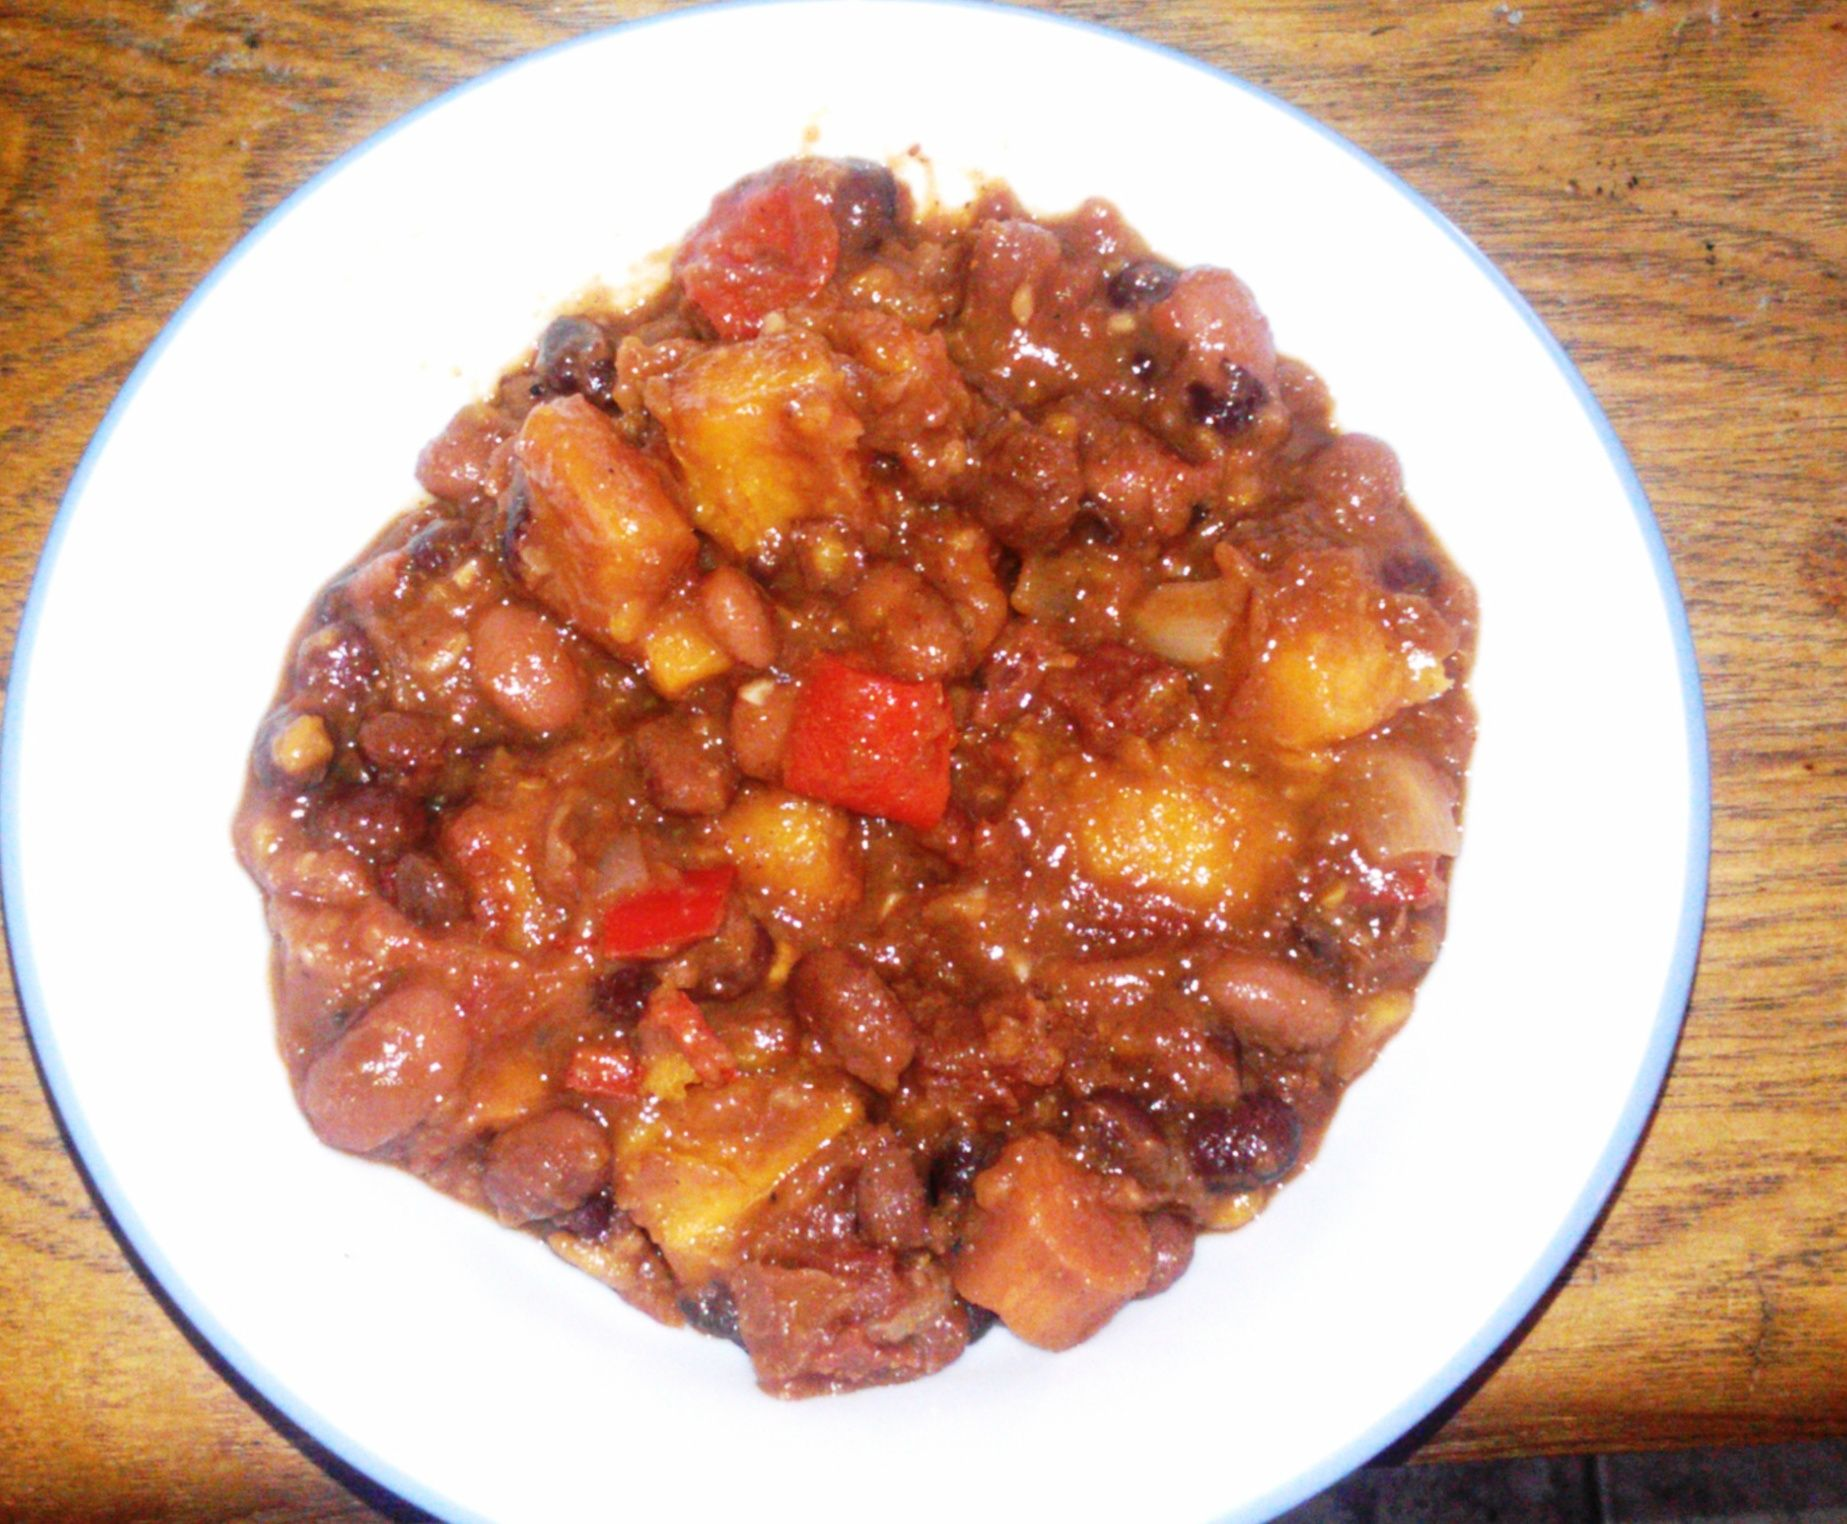 ~ Contest-winning chili with an amazing flavor twist that people go crazy over! Quick and easy in the slow cooker – and healthy, too! A guaranteed win! ~.